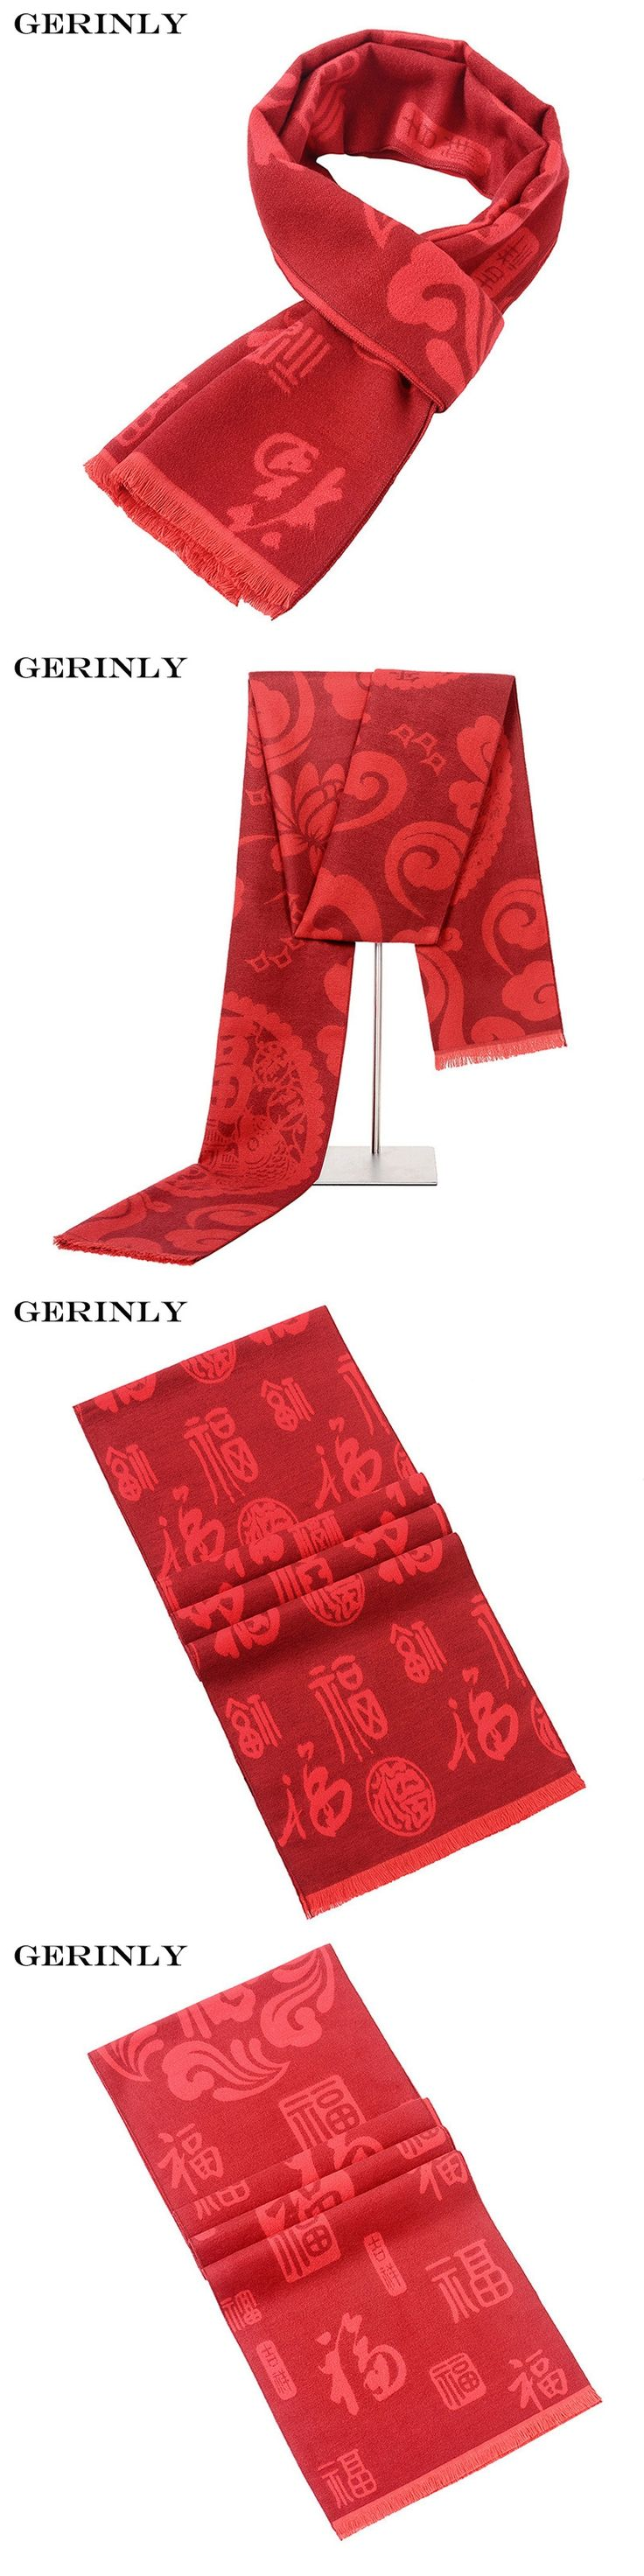 GERINLY Brand Men Scarf Luxury Red Scarves Autumn Winter Chinese Style Blessing Long Scarf 180*30cm Warm Neckerchief Male Gifts